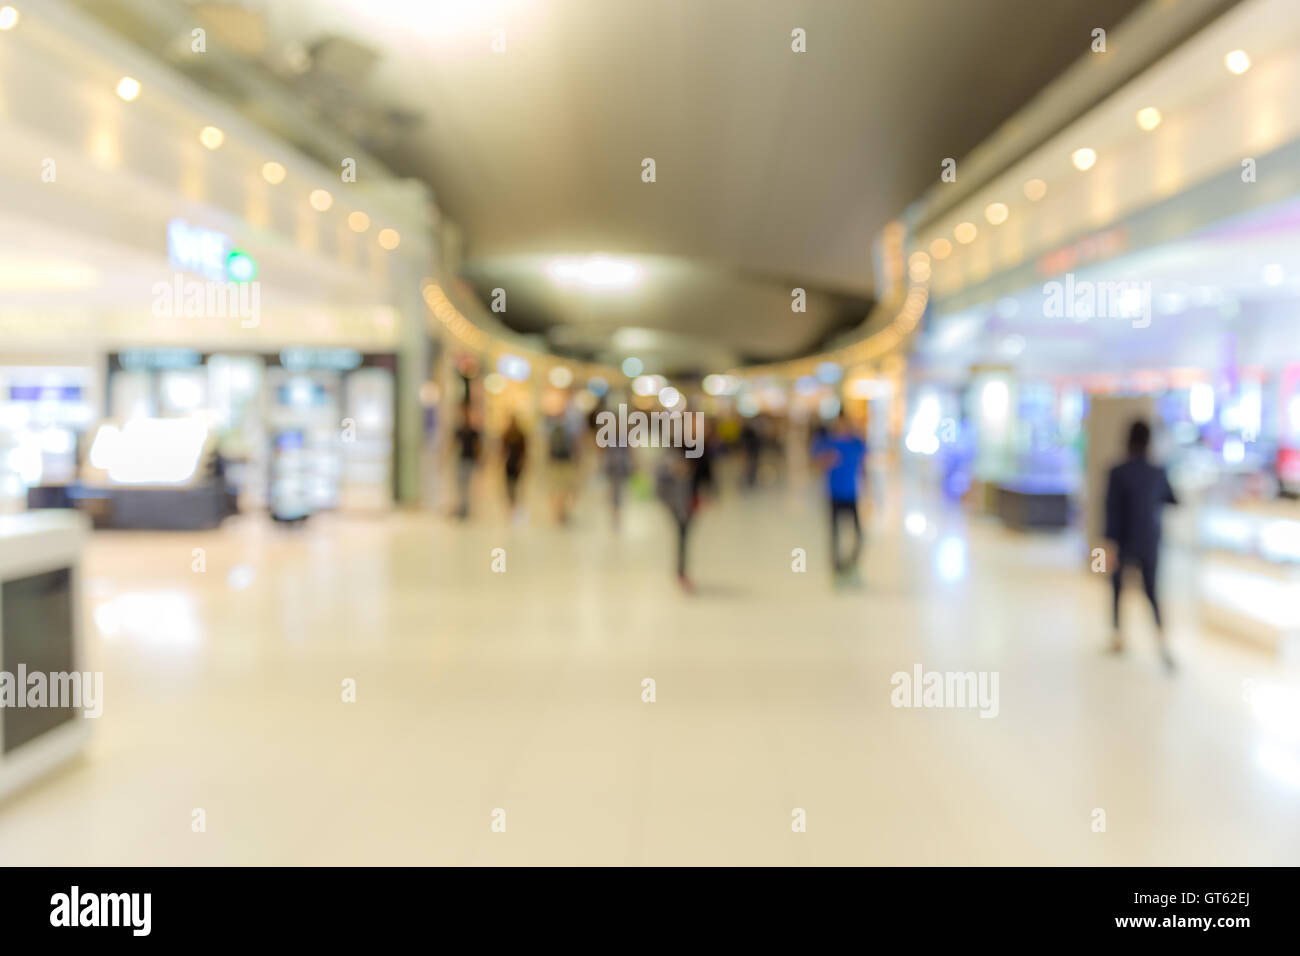 Abstrast Blurred background : airport boarding area - Stock Image